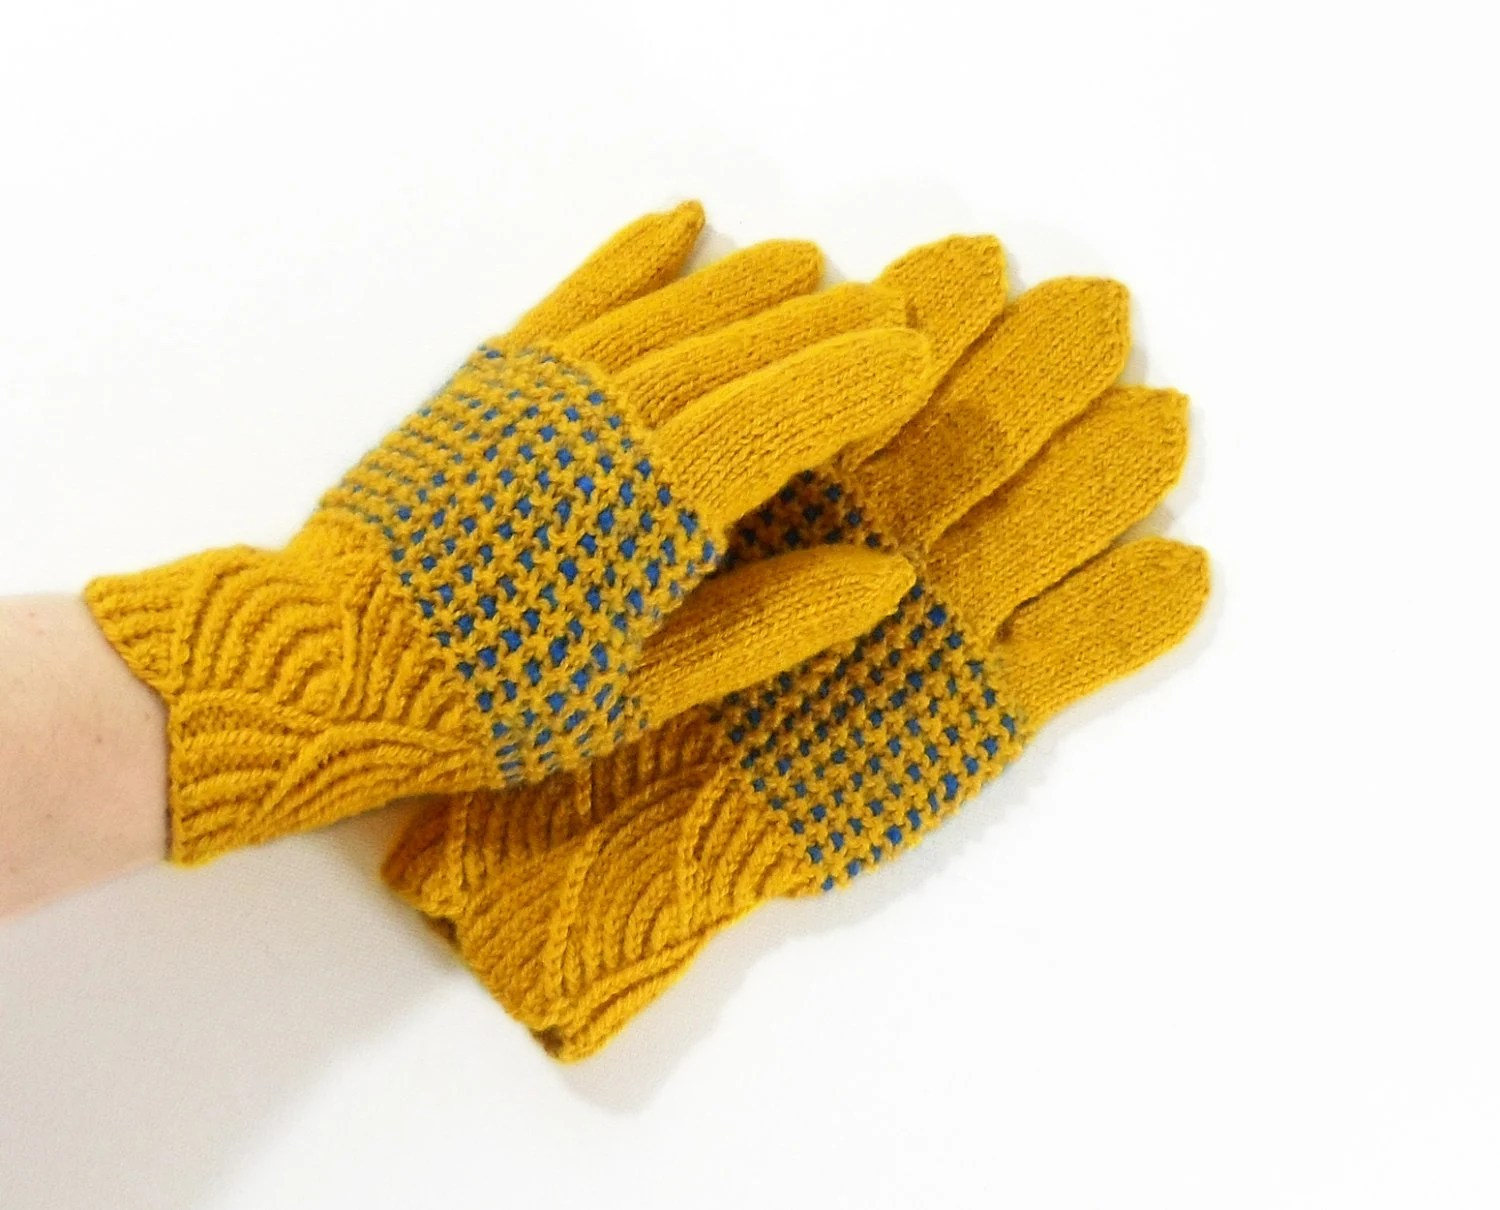 Hand Knitted Gloves - Yellow, Size Medium - UnlimitedCraftworks